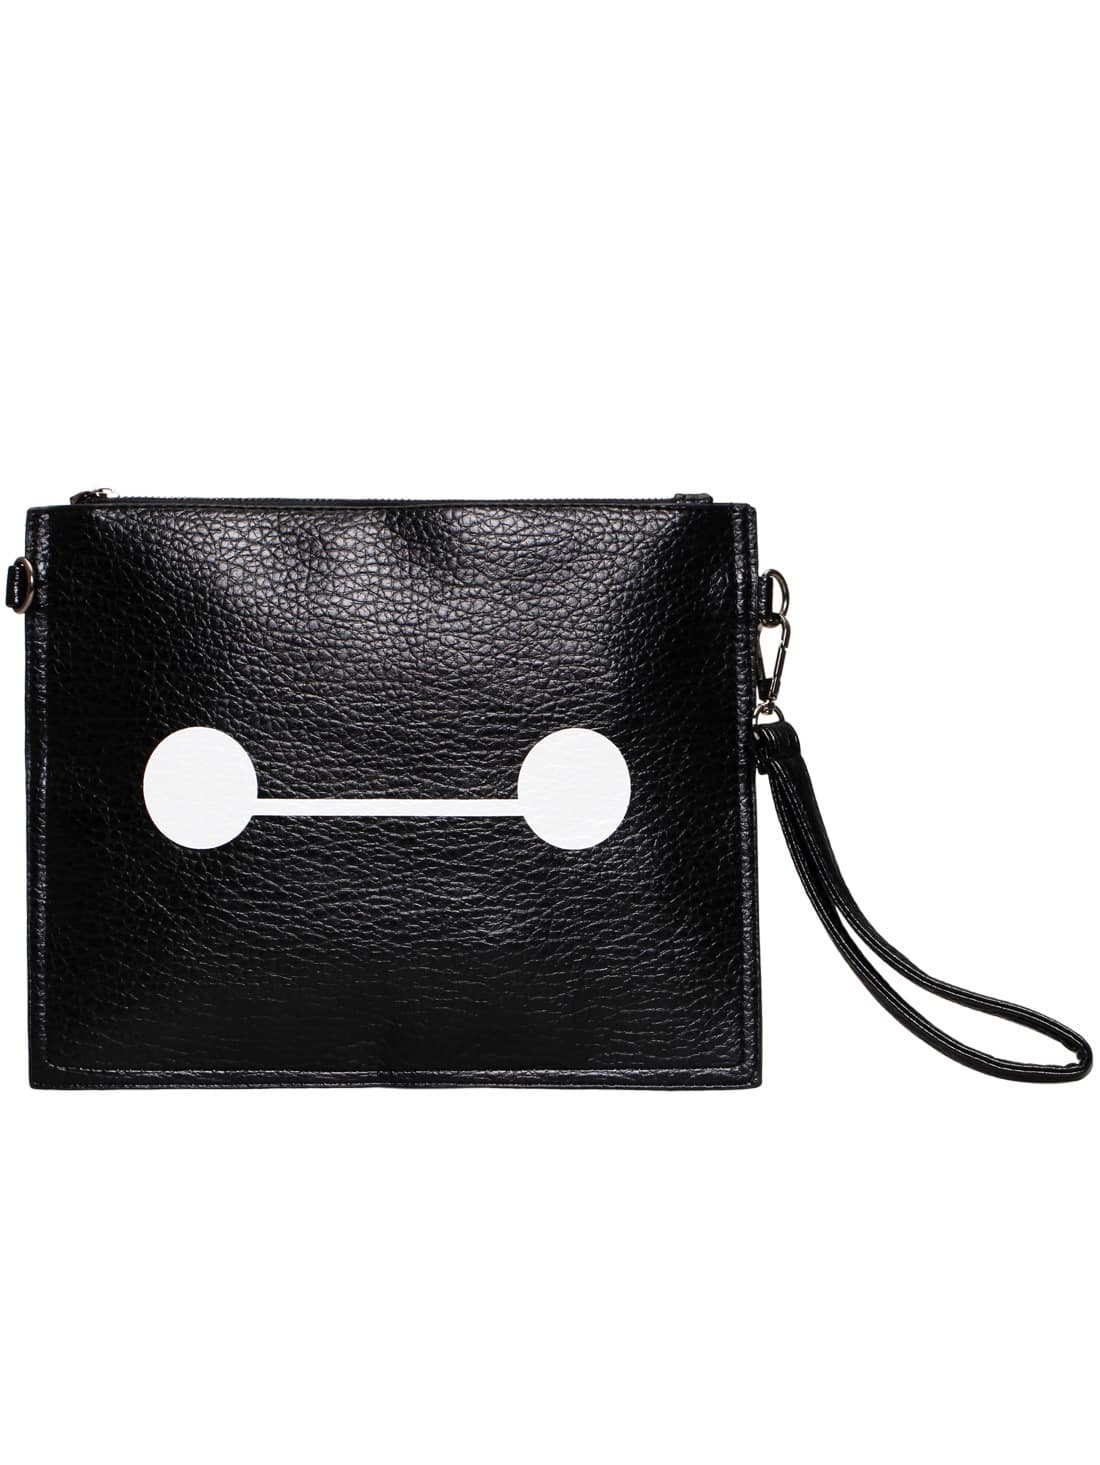 Black Zipper PU Clutch Bag